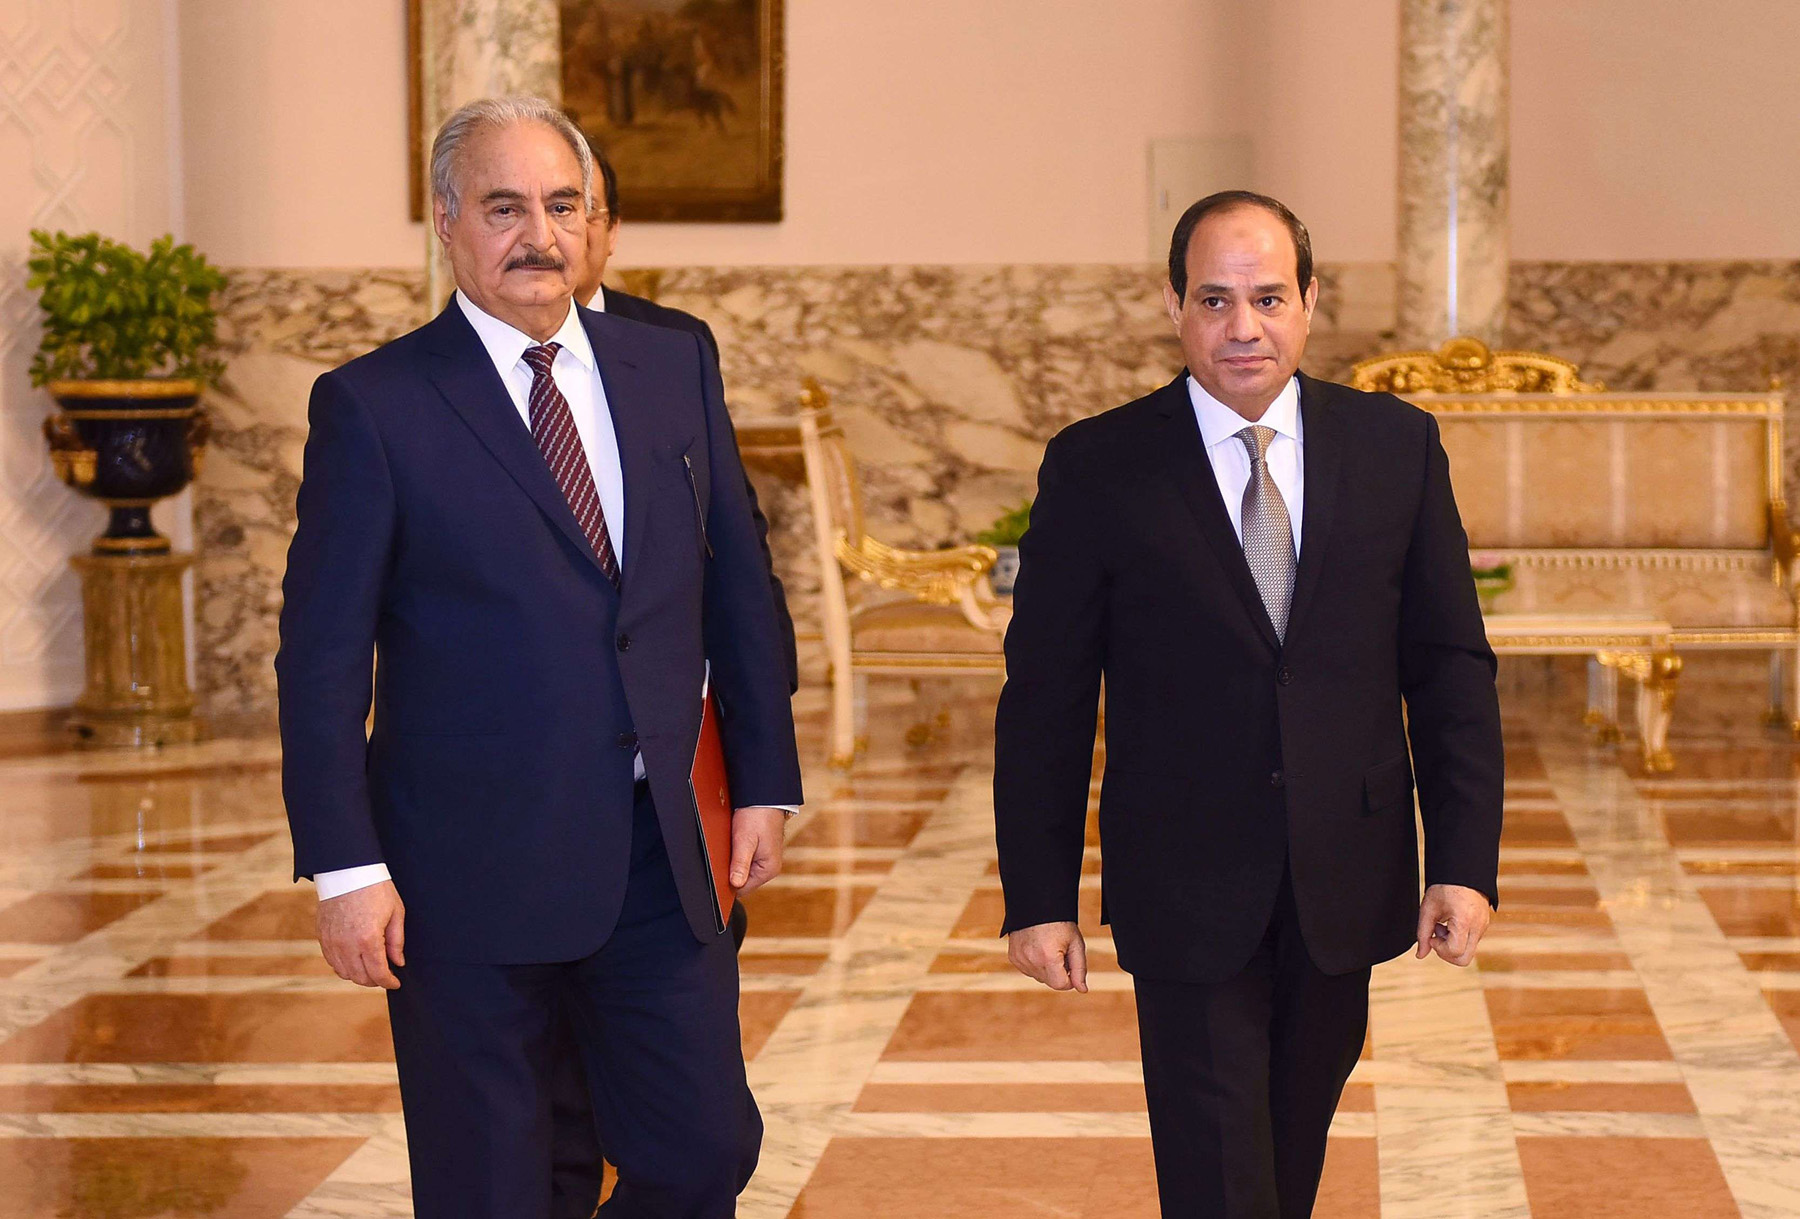 Egyptian president Abdel Fattah al-Sisi (R) meets Libyan strongman Khalifa Haftar (L) at the Ittihadia presidential Palace in the capital Cairo, on April 14, 2019. (AFP)